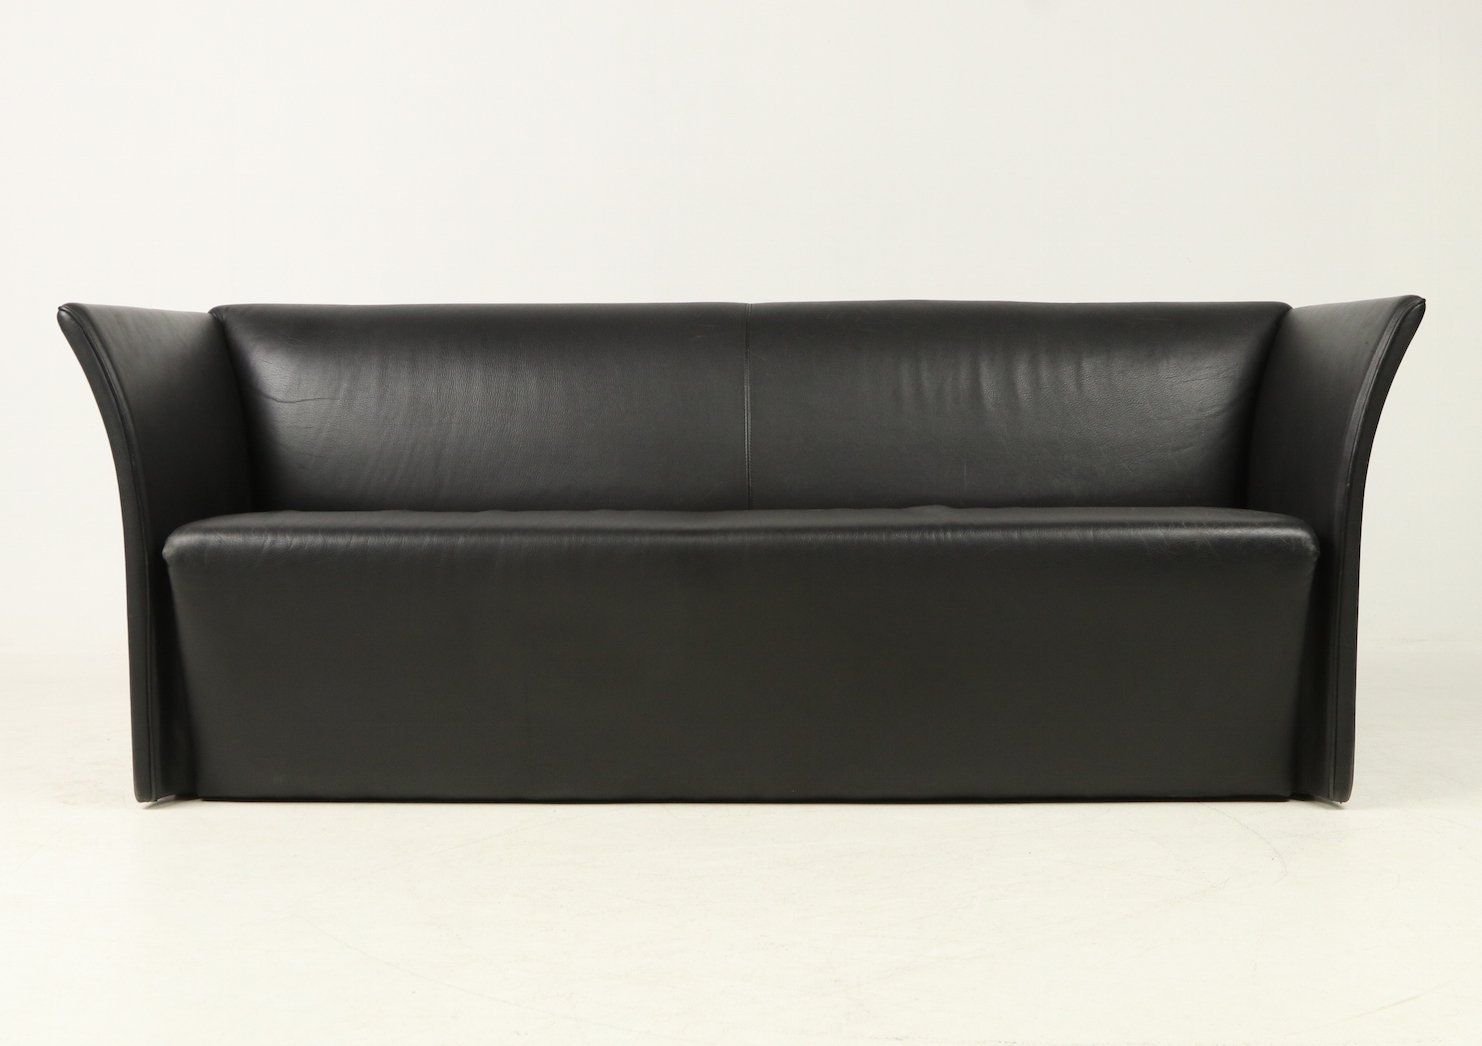 Modern design 3-seater sofa in black leather